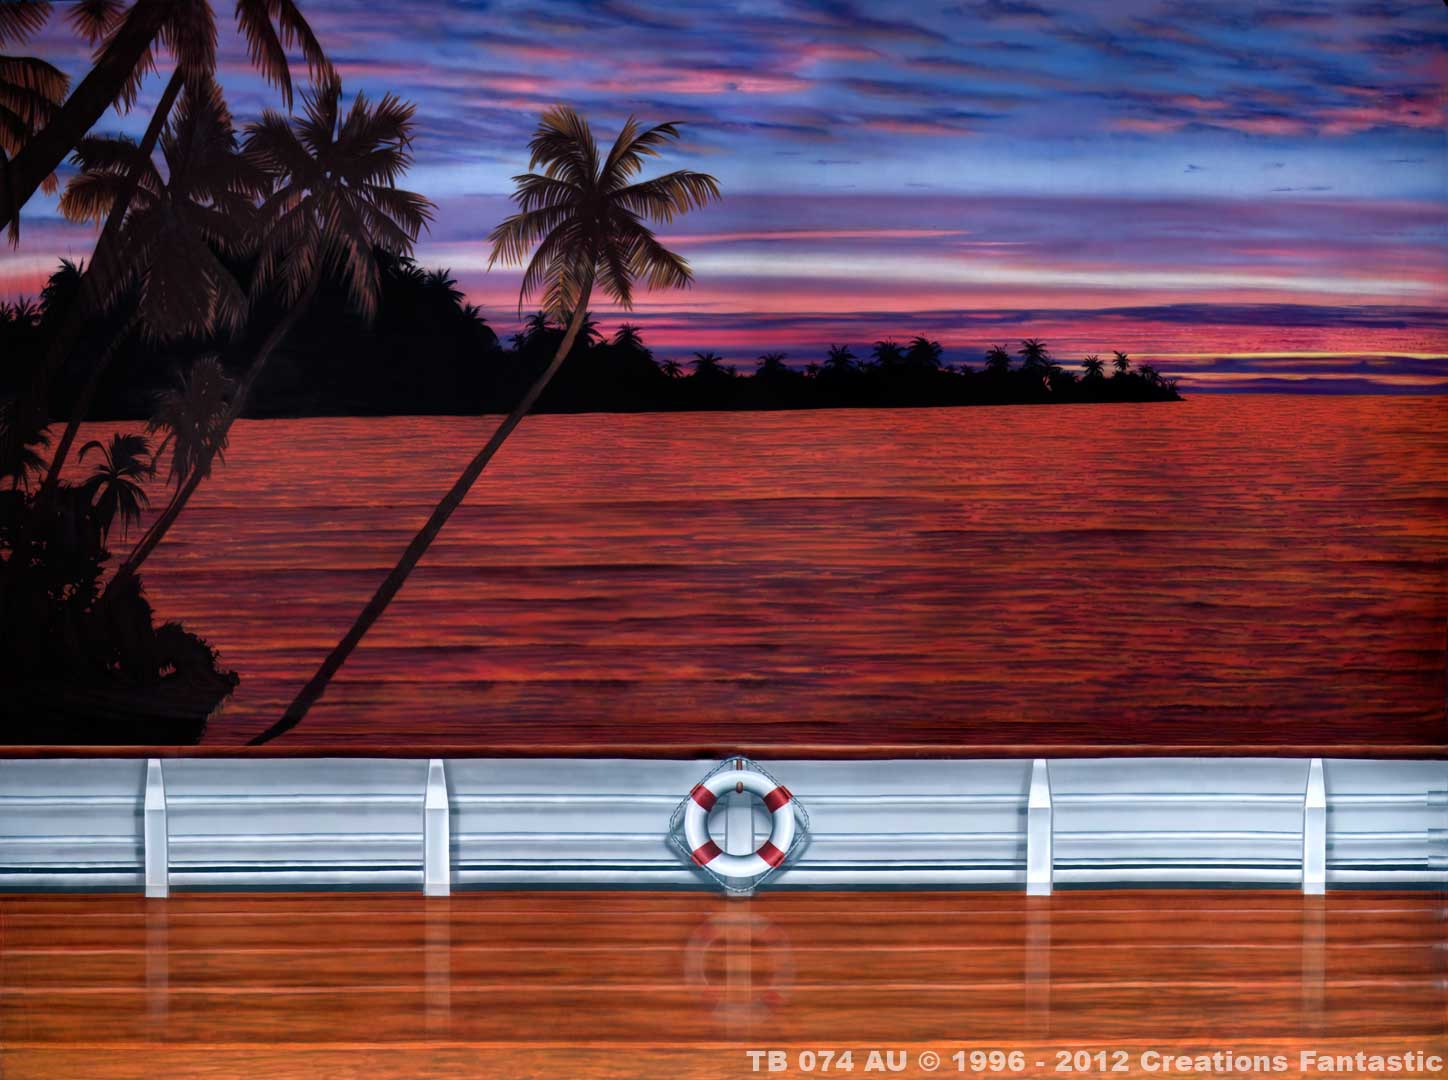 Tropical Sunset Cruise backdrop image